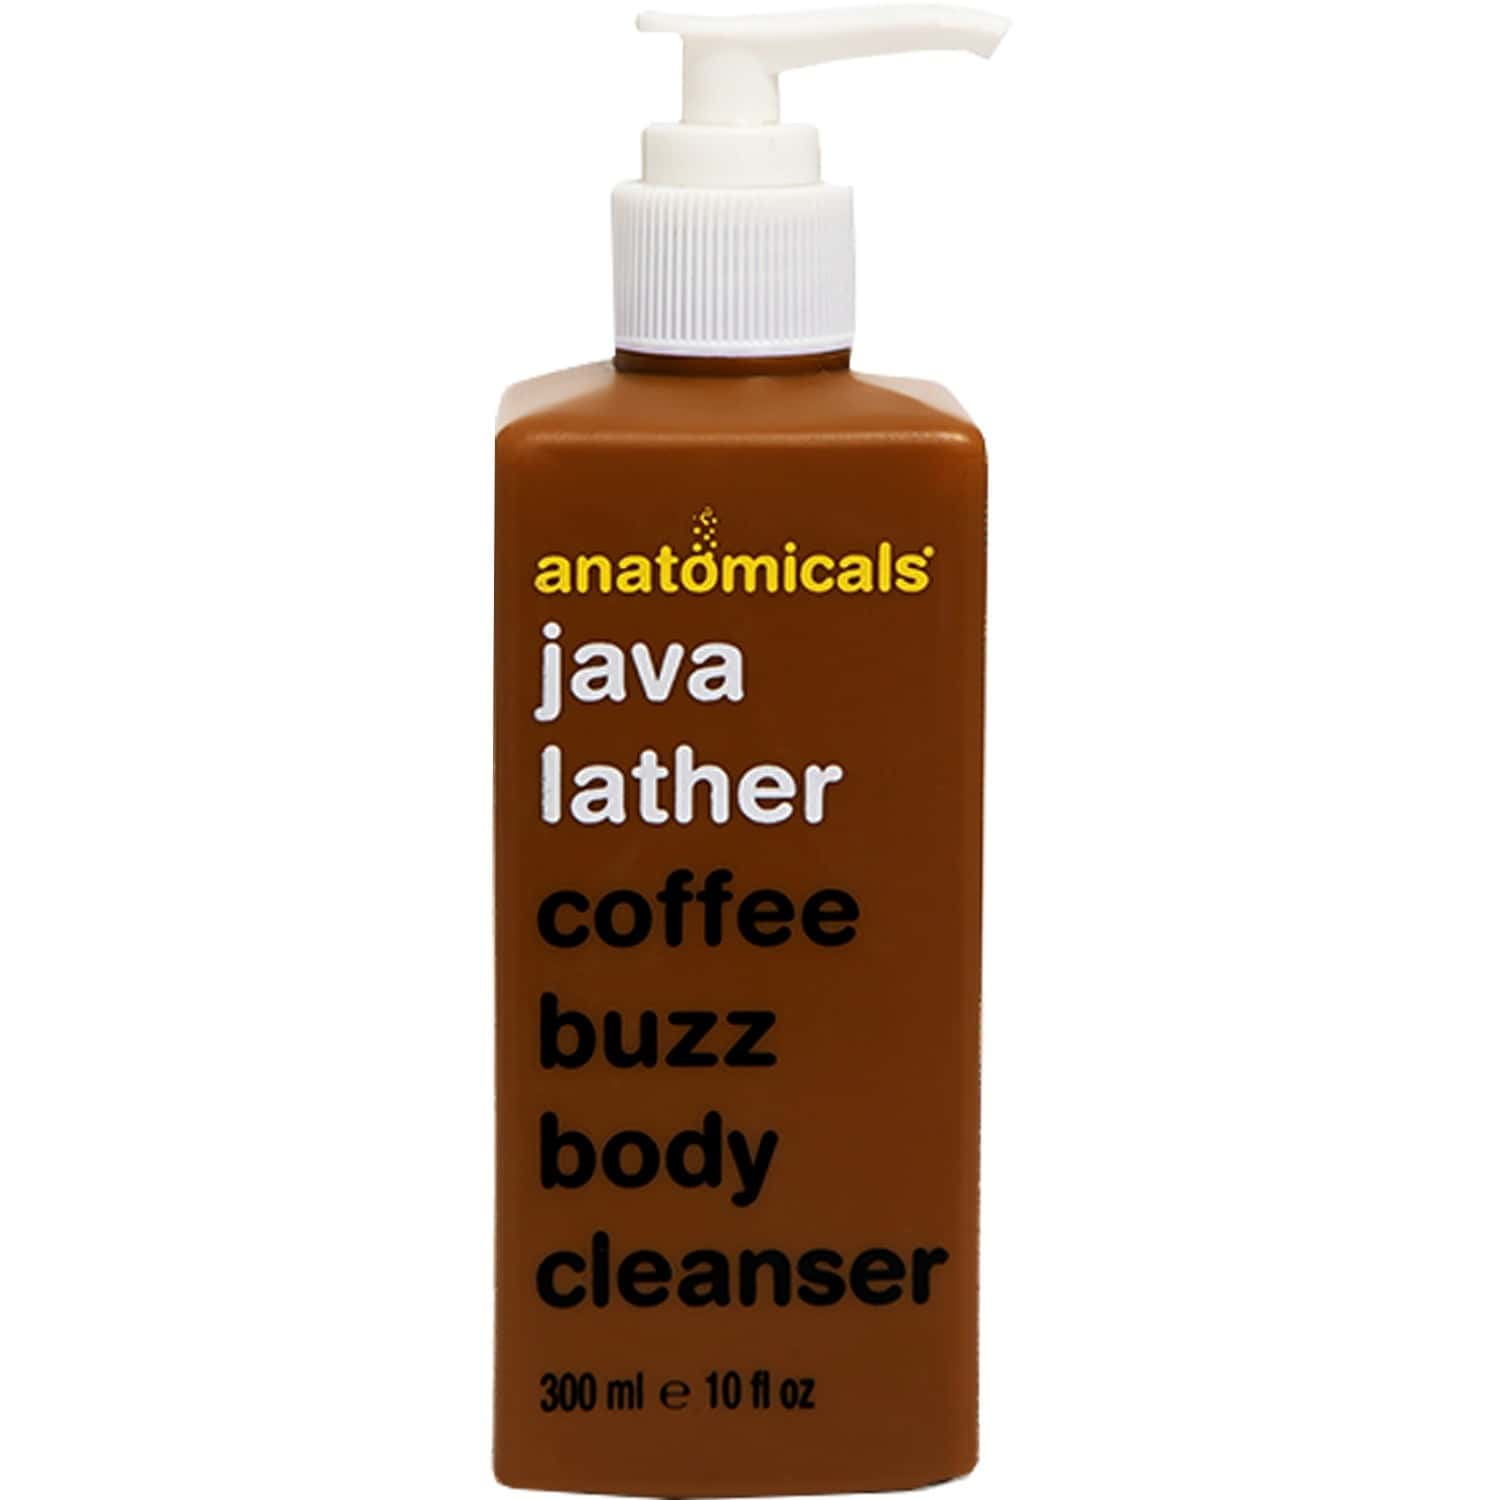 Anatomicals   Coffee Buzz Body Cleanser   Thoroughly Cleanses And Invigorates   Paraben Free   Unisex   300 Ml